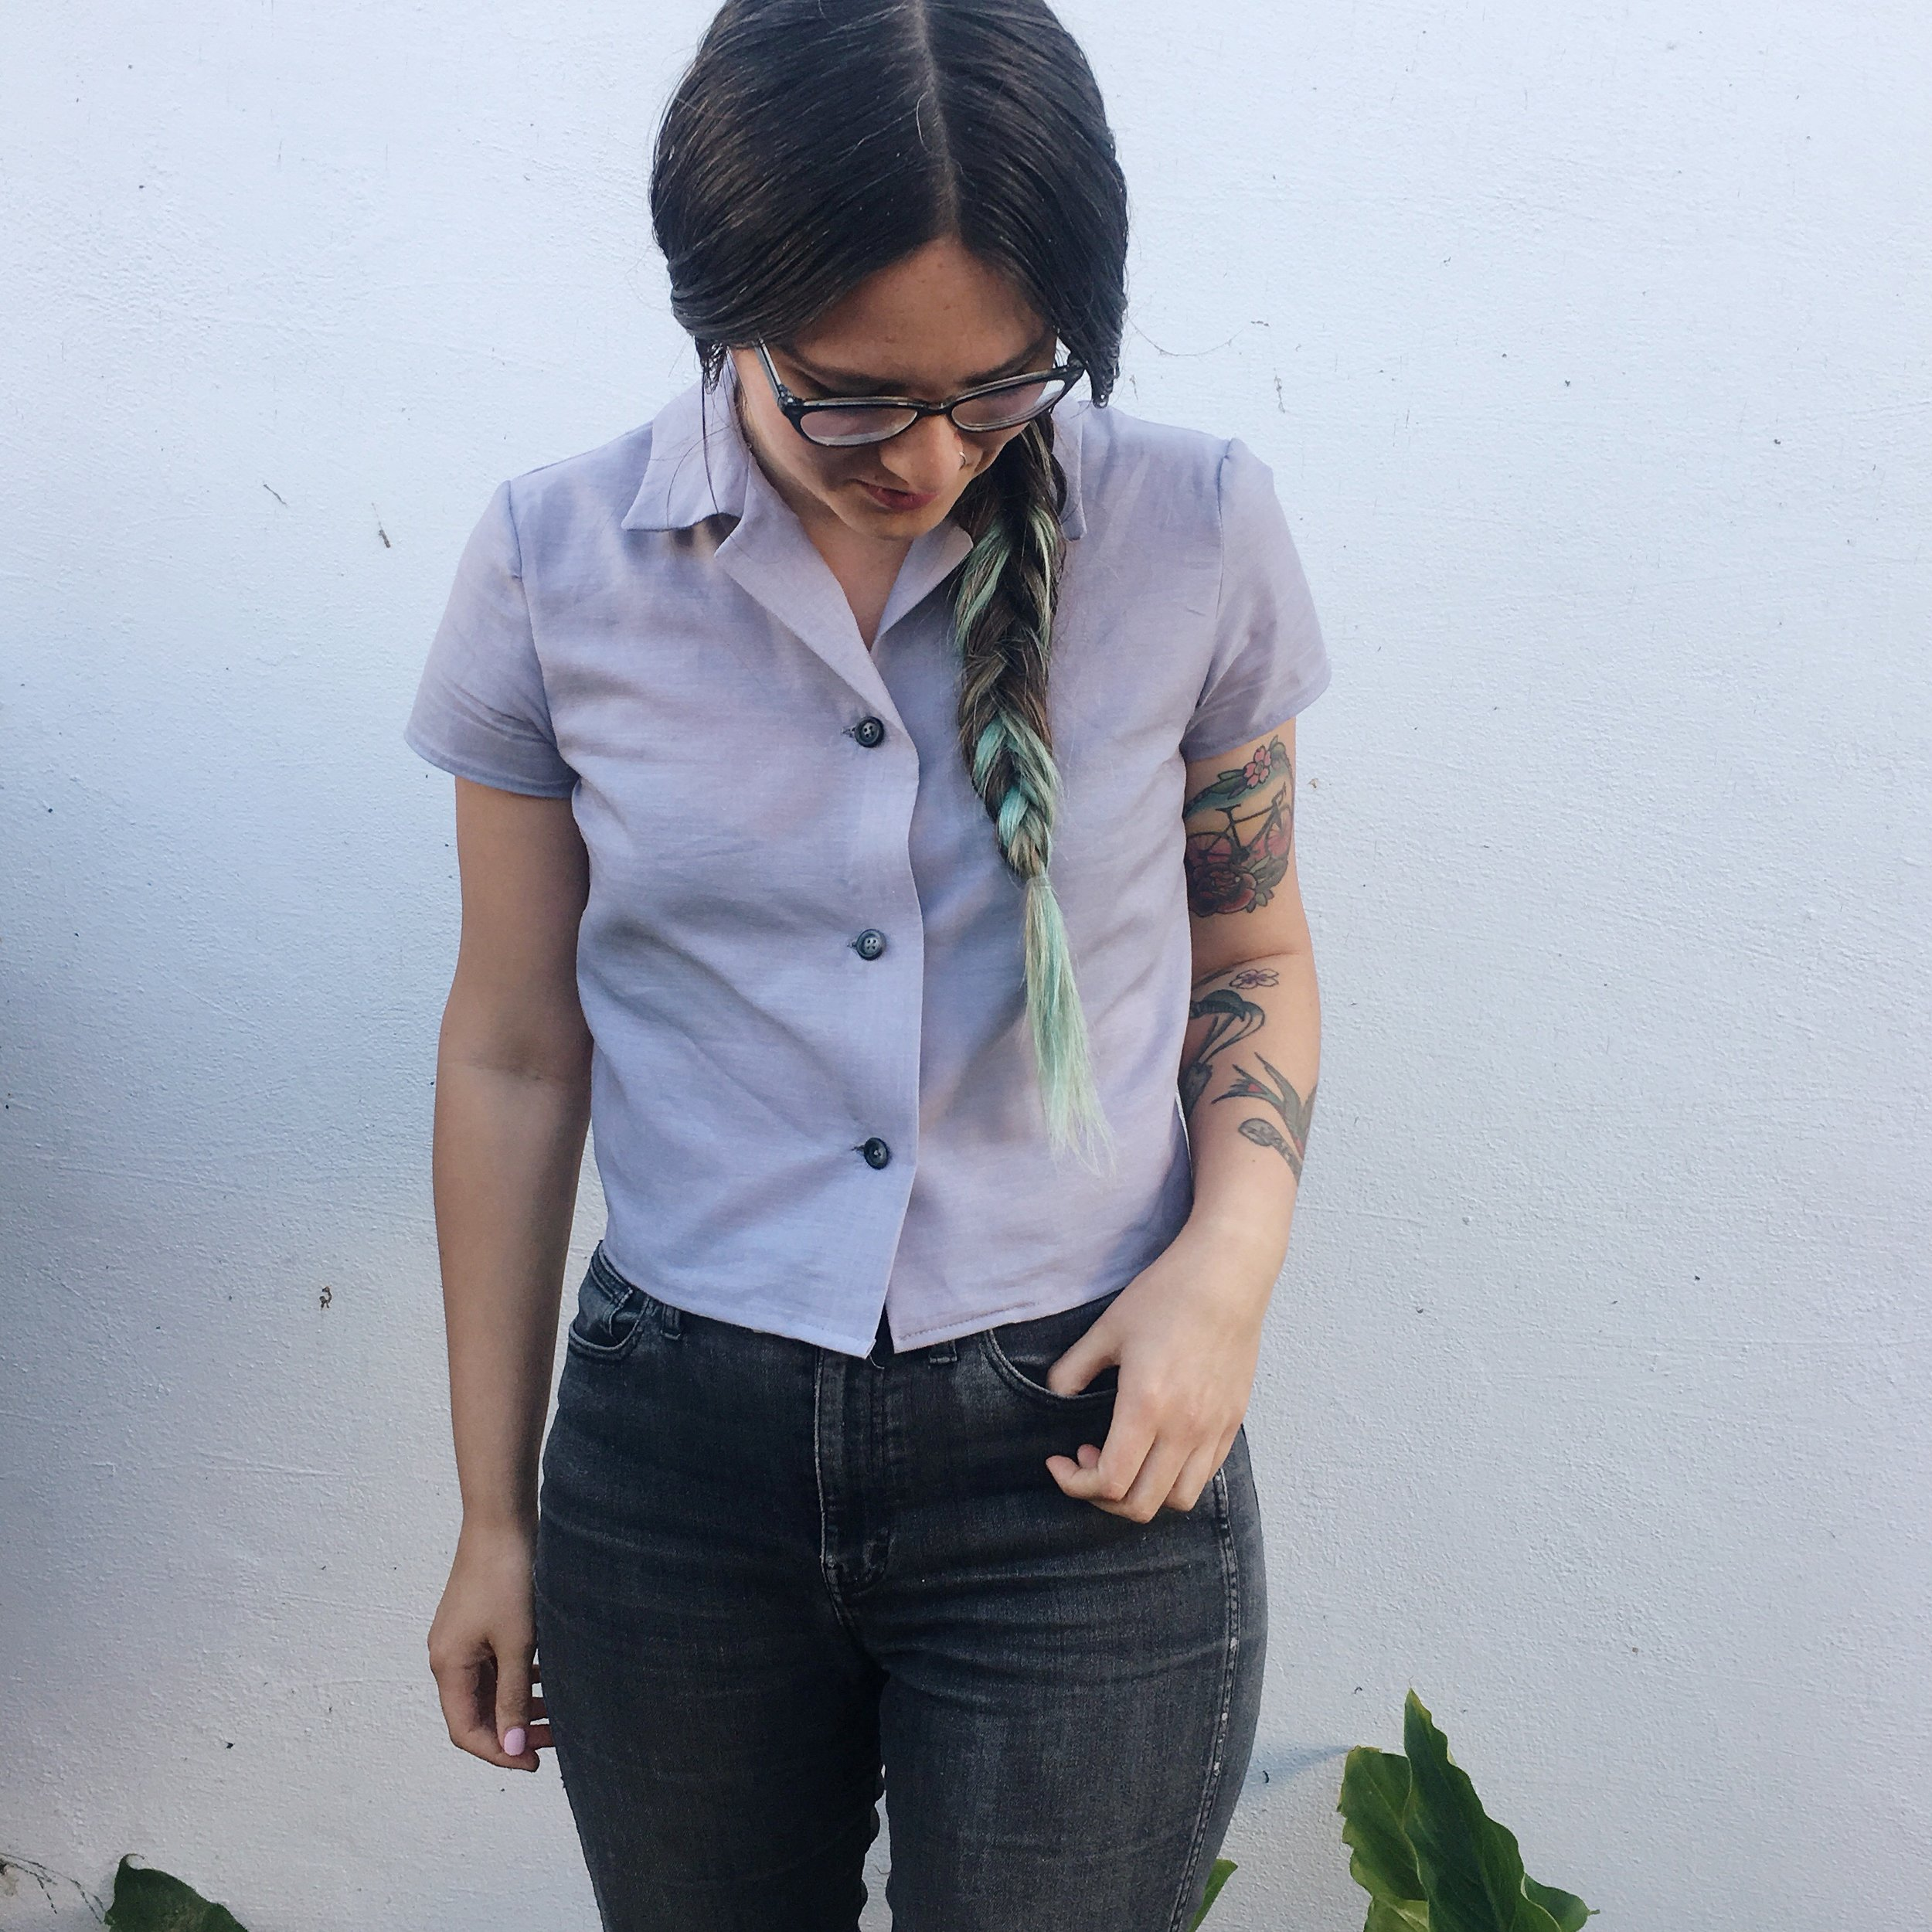 Full outfit details: Glasses from  Zenni Optical ,  BurdaStyle blouse  made from unknown fabric with vintage buttons, v old  Madewell  jeans (but those are similar), vintage belt I stole from my husband.